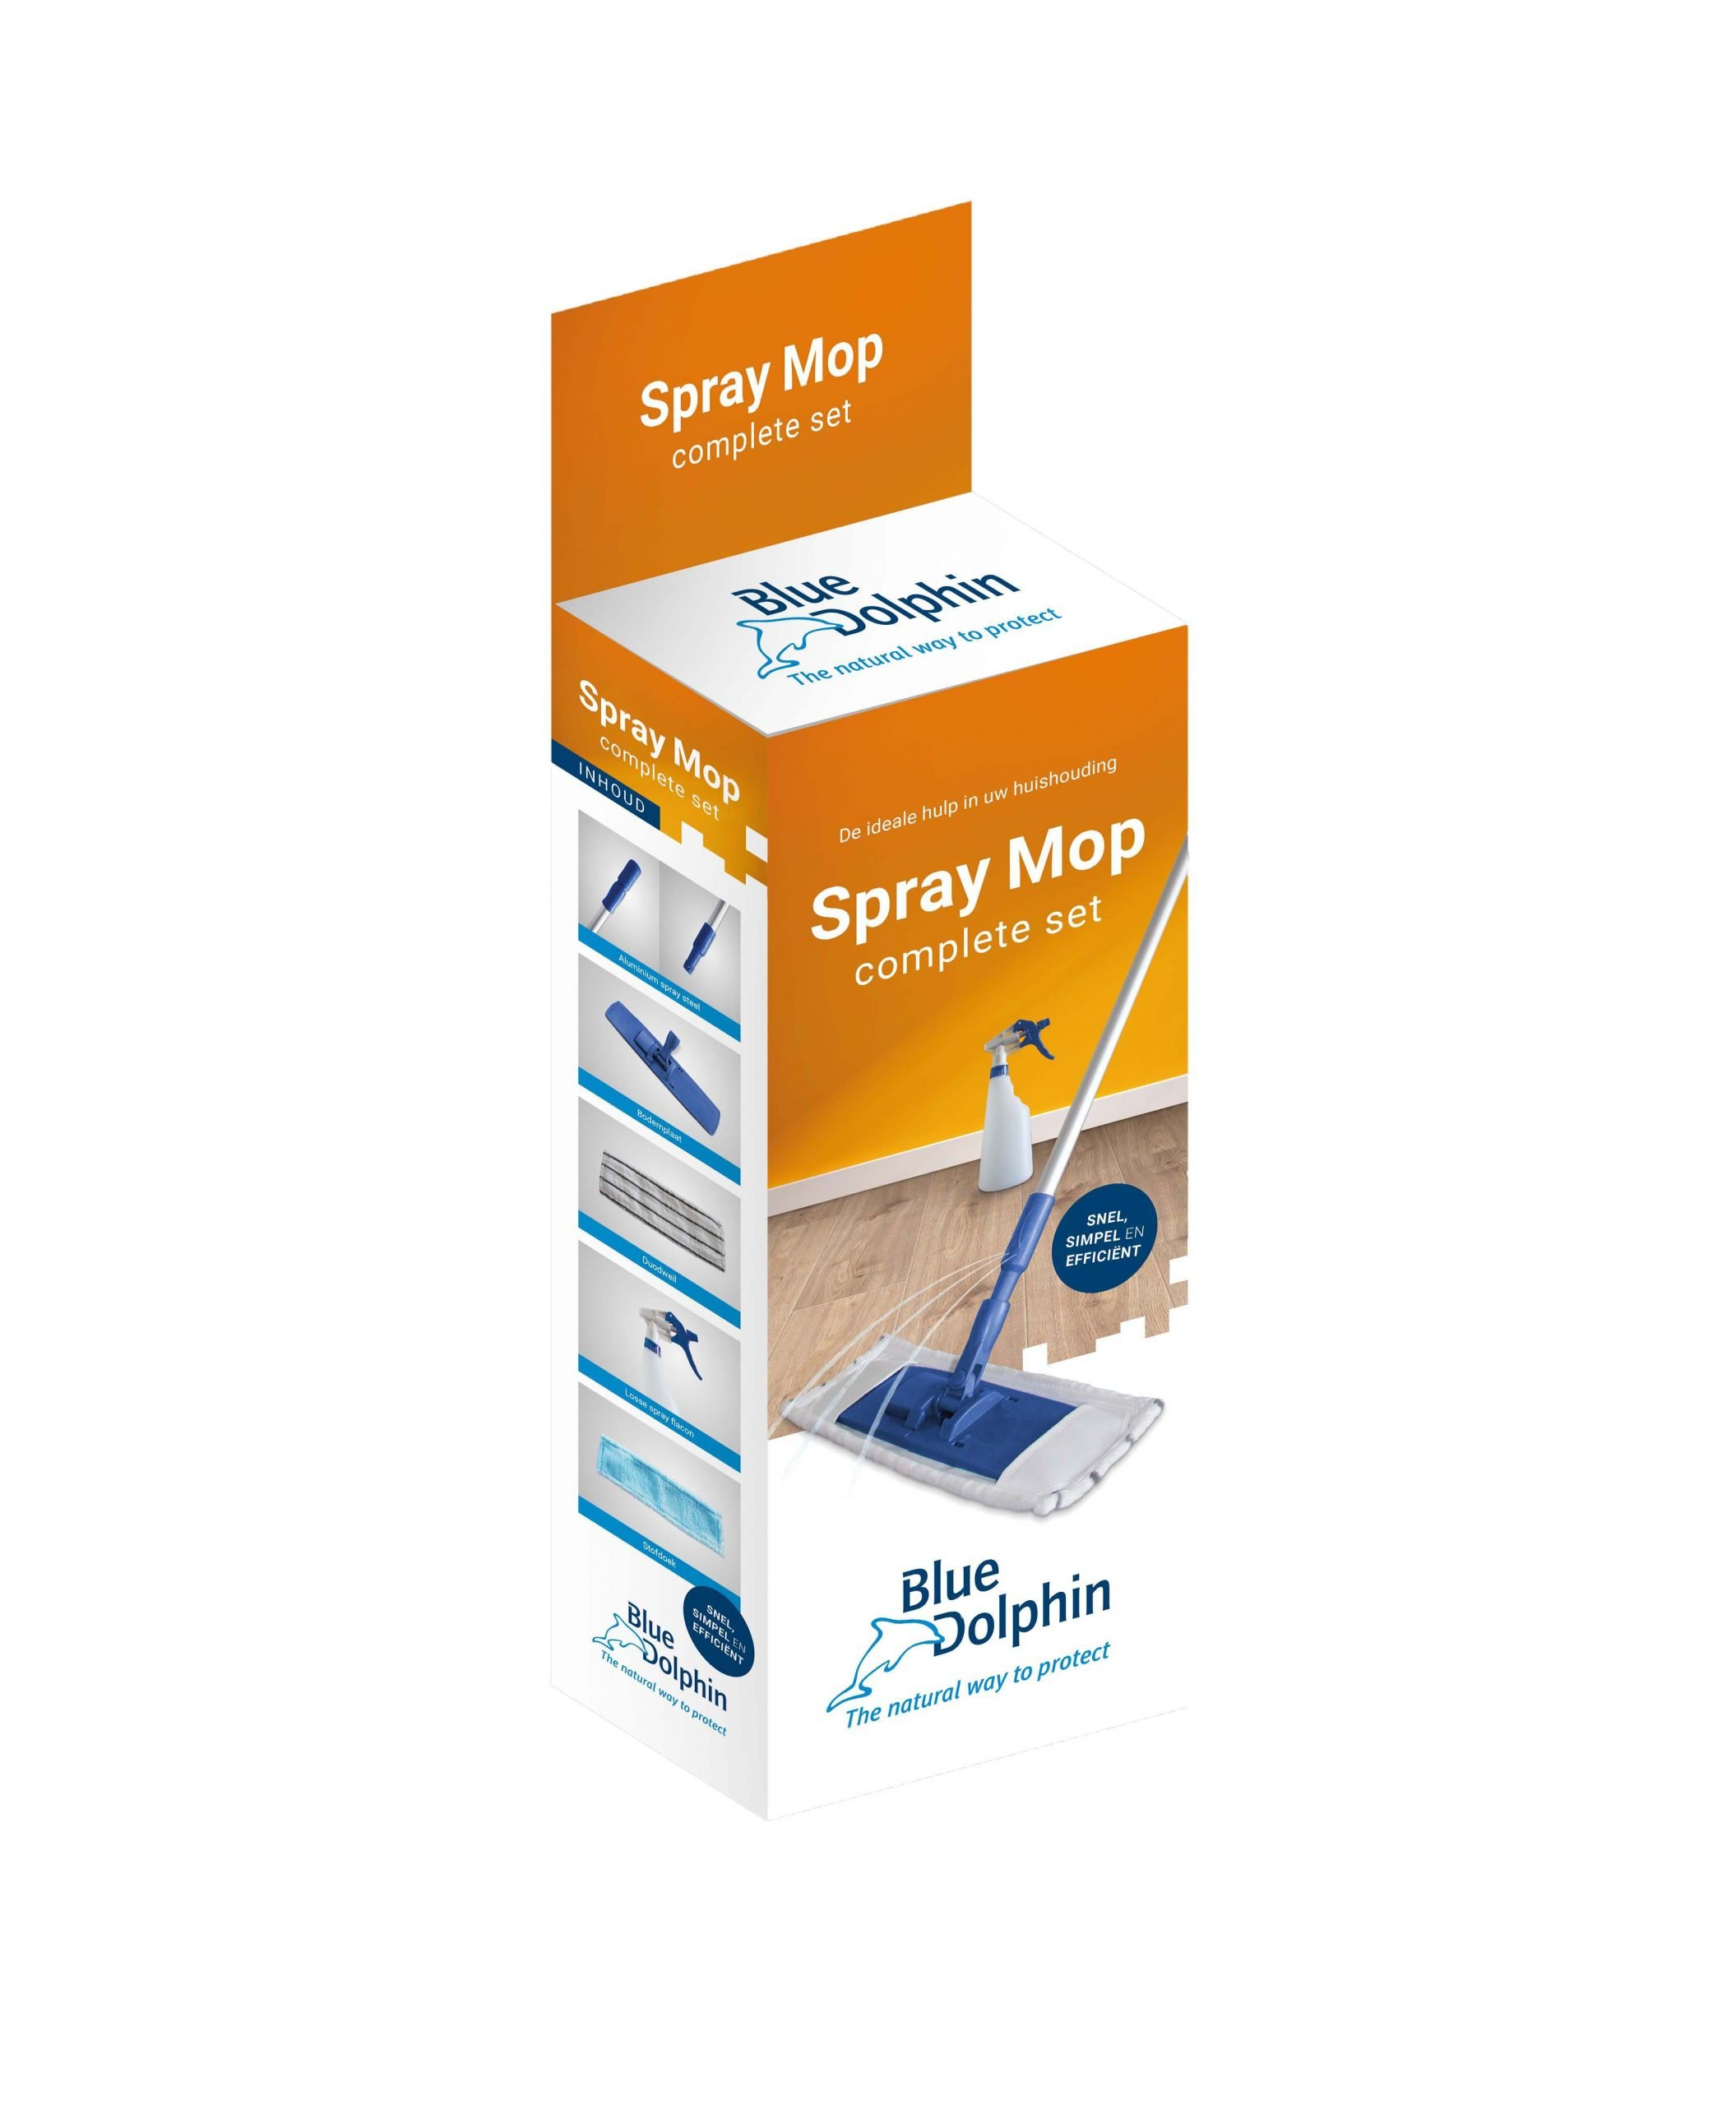 Spray Mop set